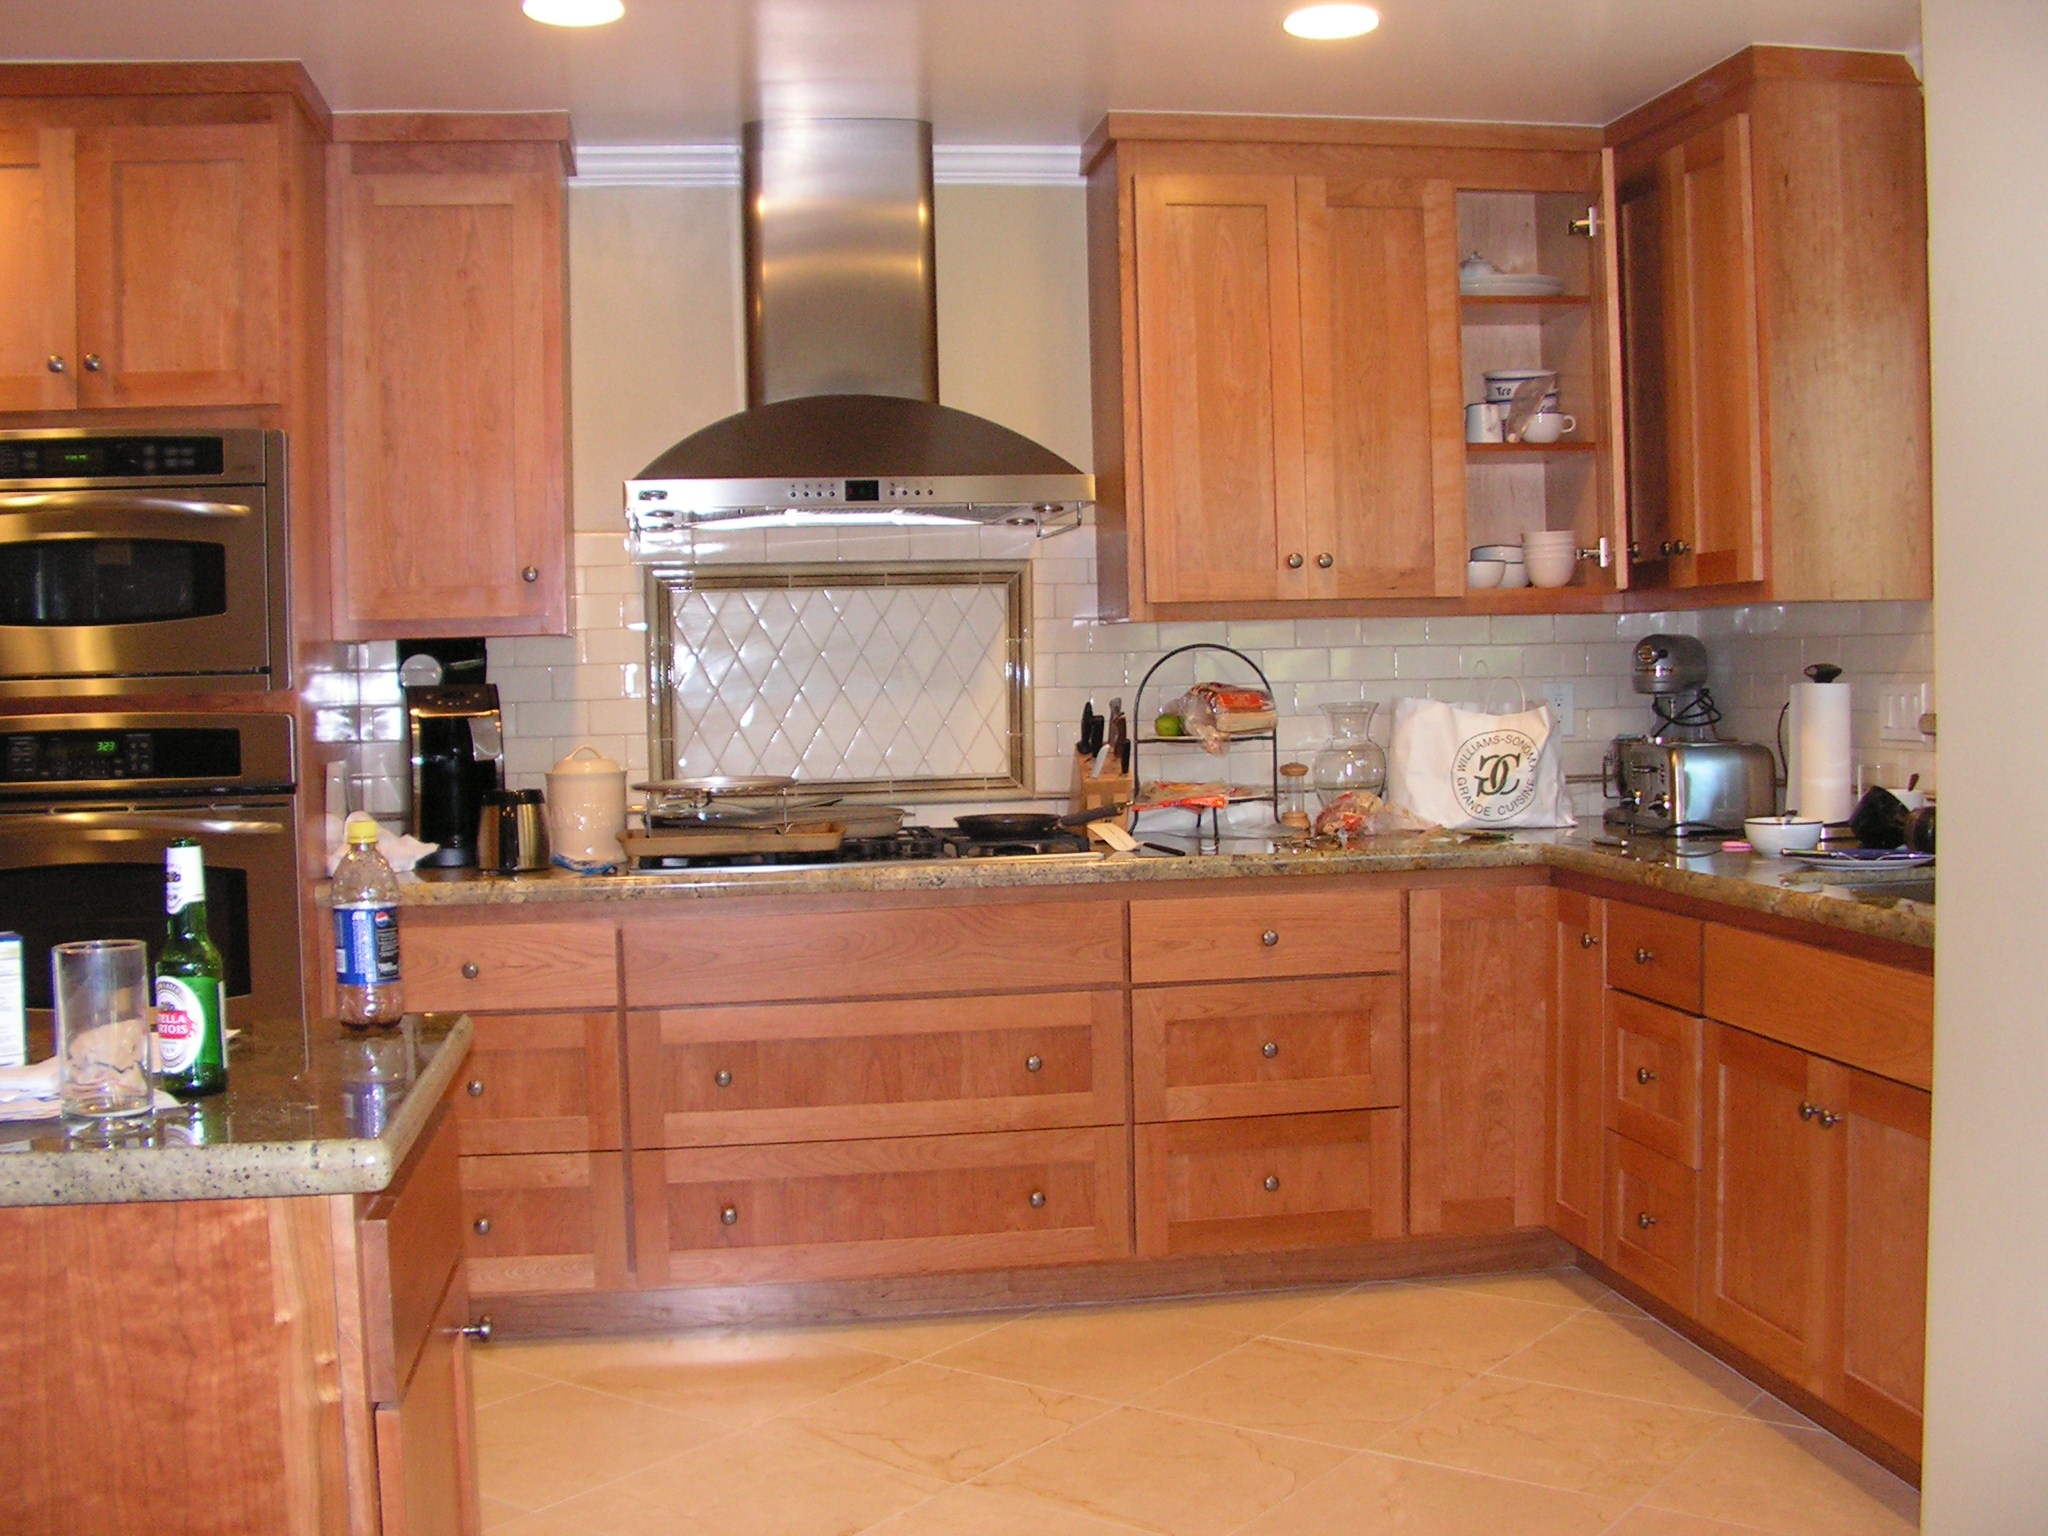 Kitchen Remodel With Custom Cabinets By CWI General Contractor